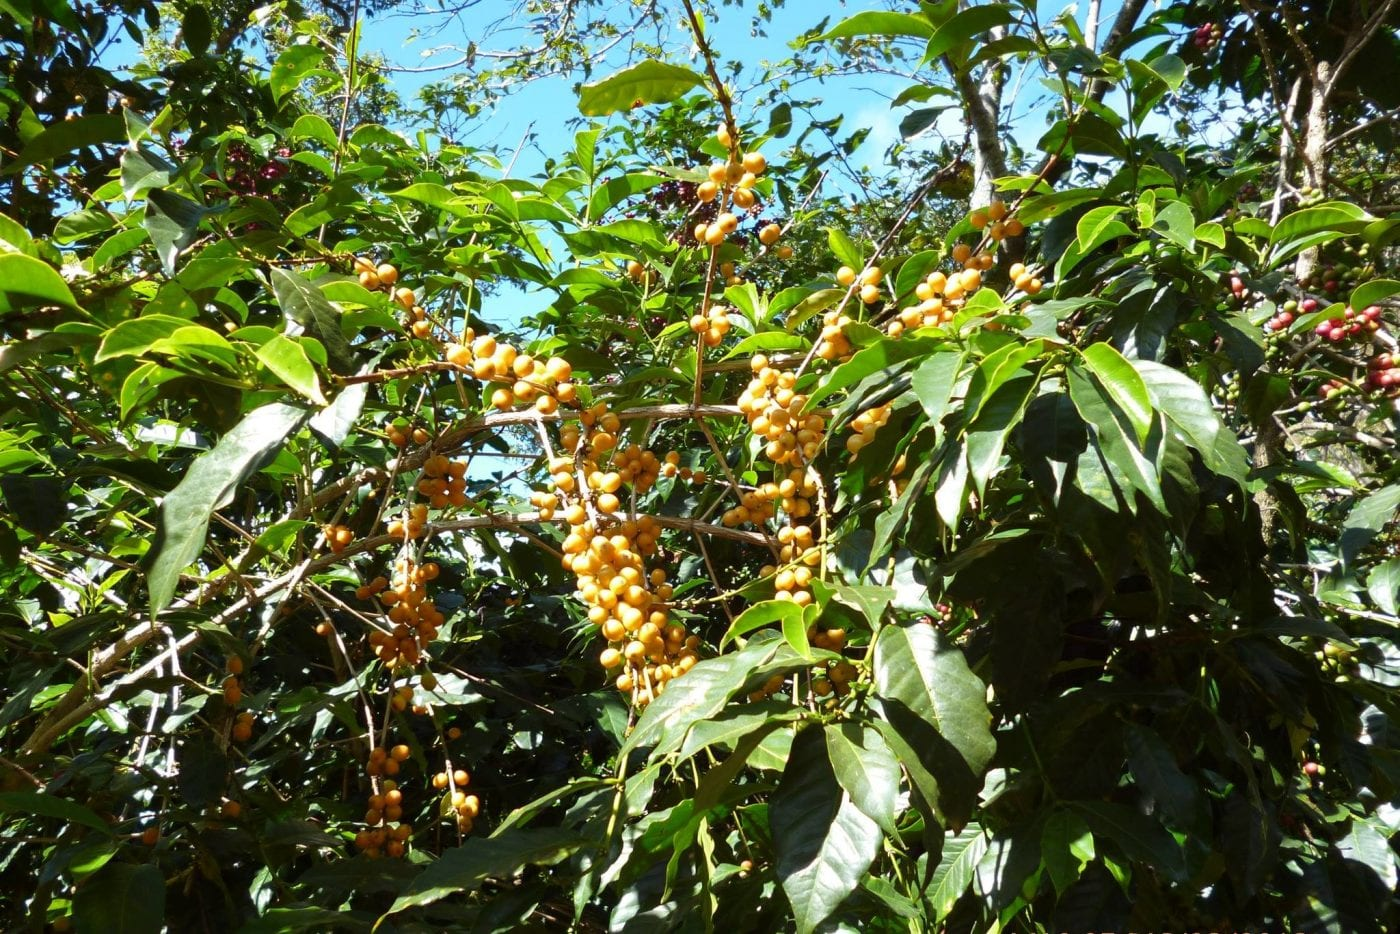 Yellow Catuai cherries ripe and ready to be harvested